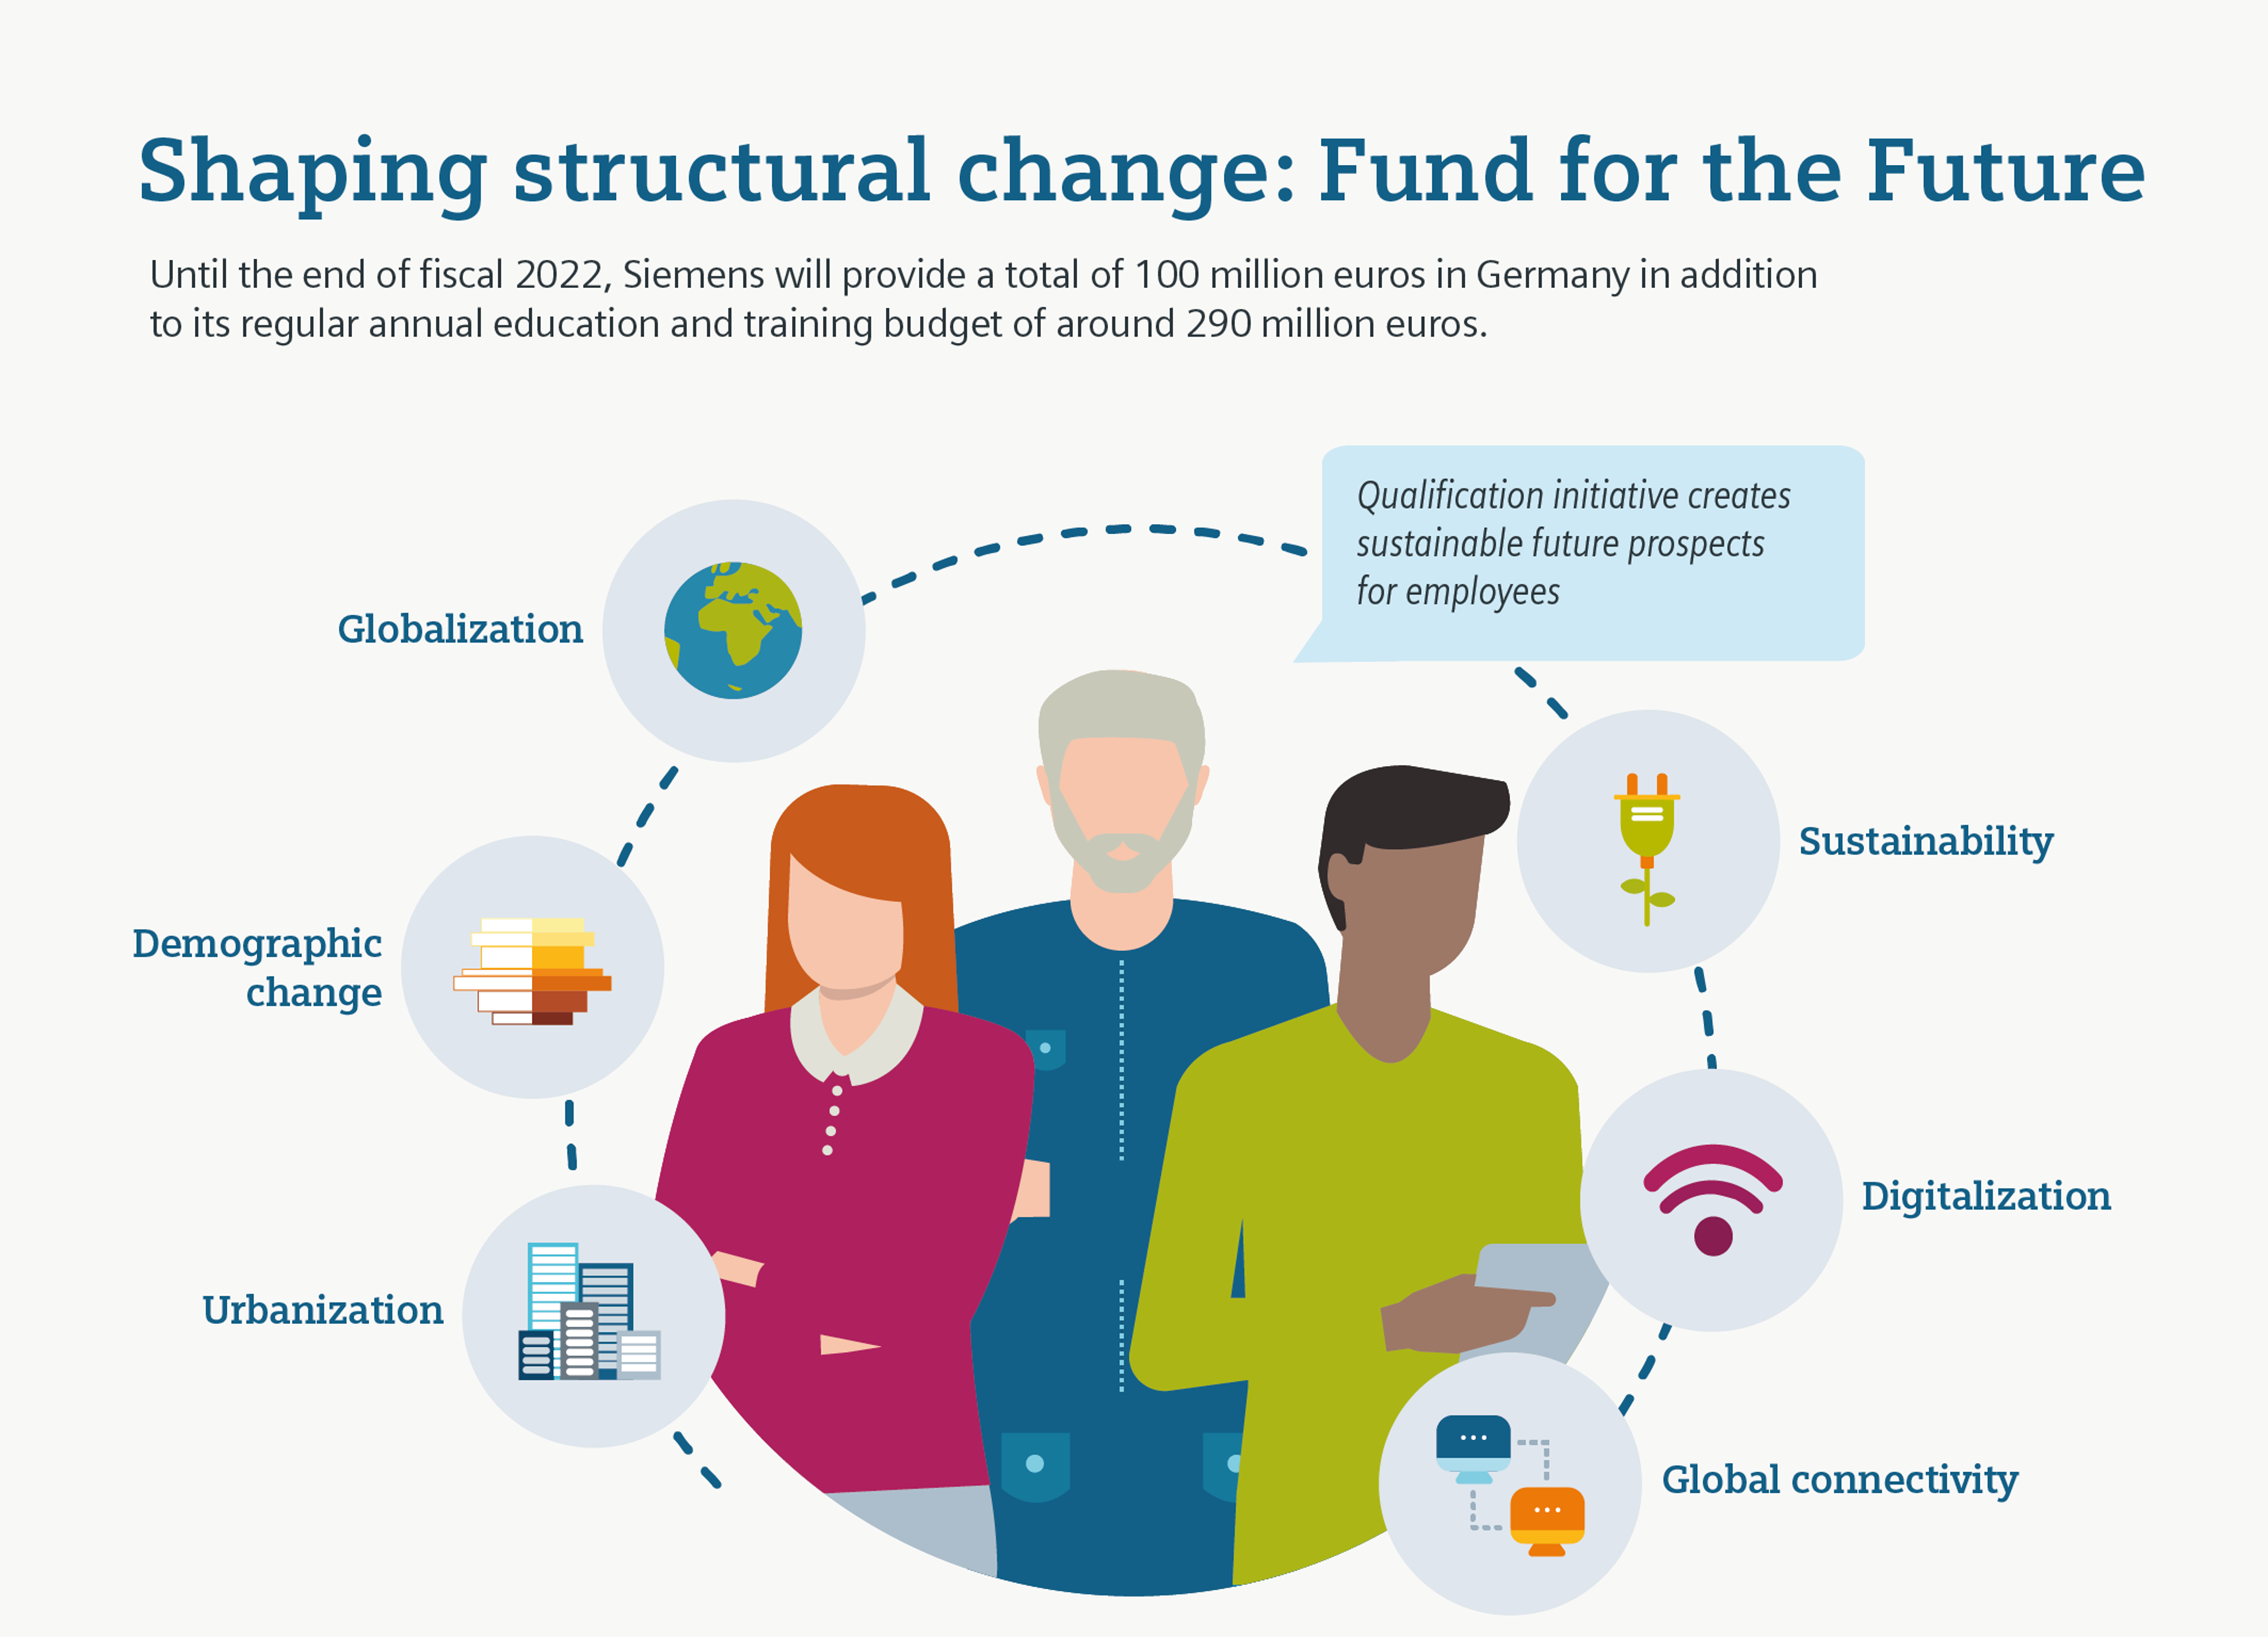 Siemens launches Fund for the Future to shape structural